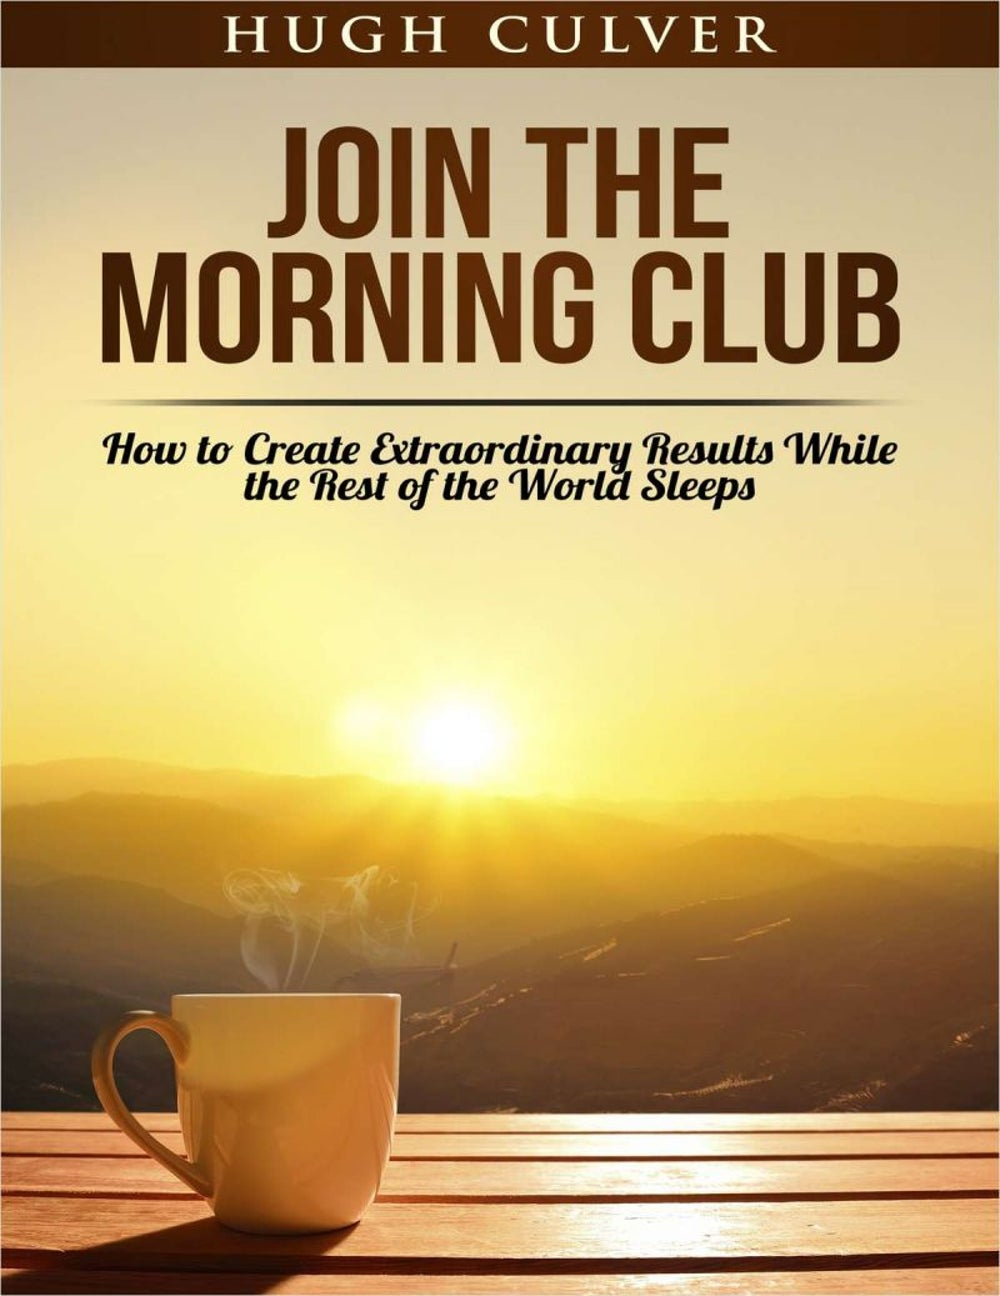 Join the Morning Club